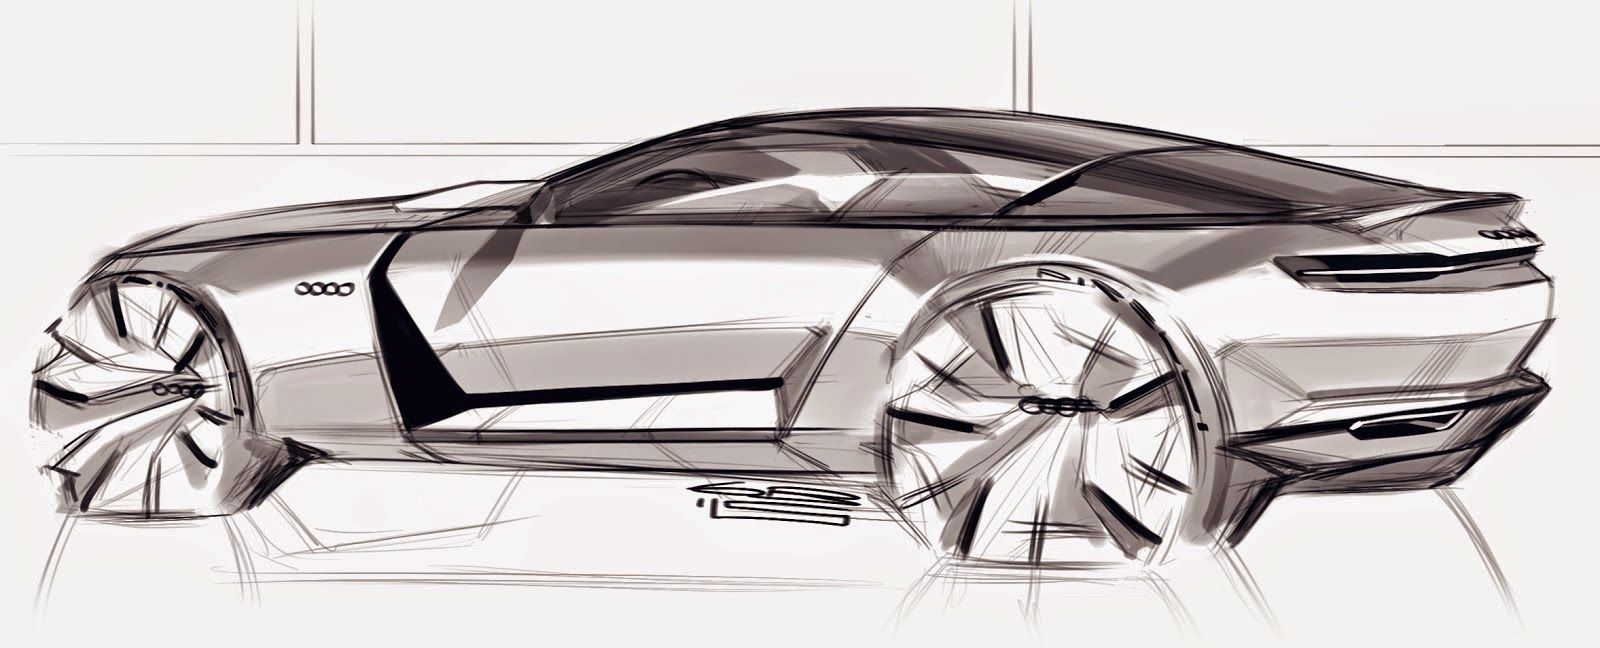 Car sketches and illustrations by Grigory Bars   Car Design ...